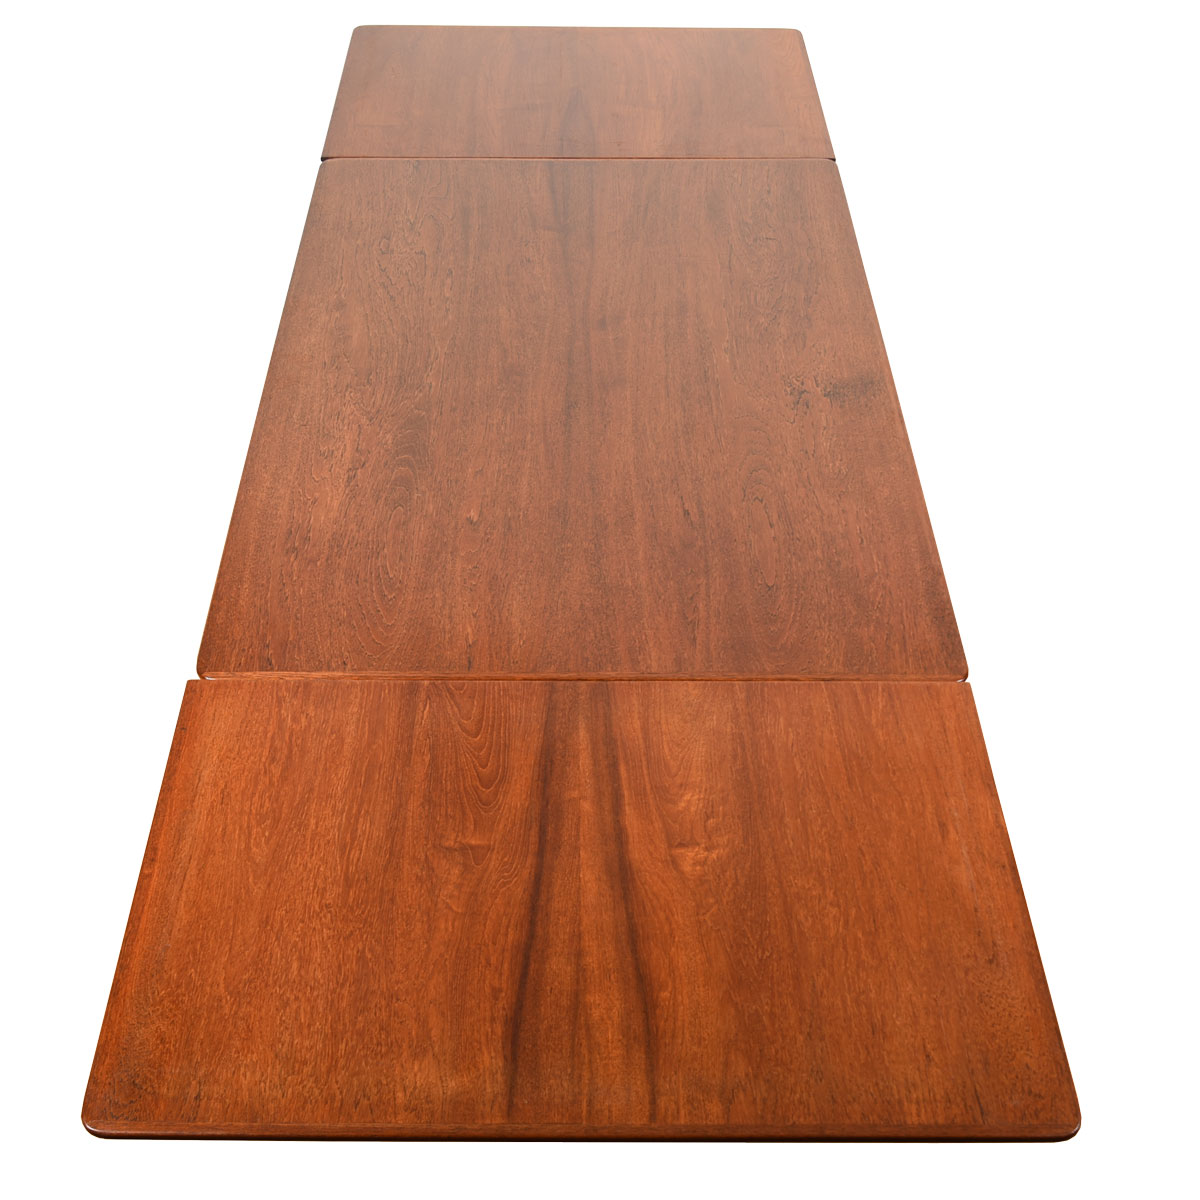 Early Danish Teak Expanding Mid-Sized Dining Table